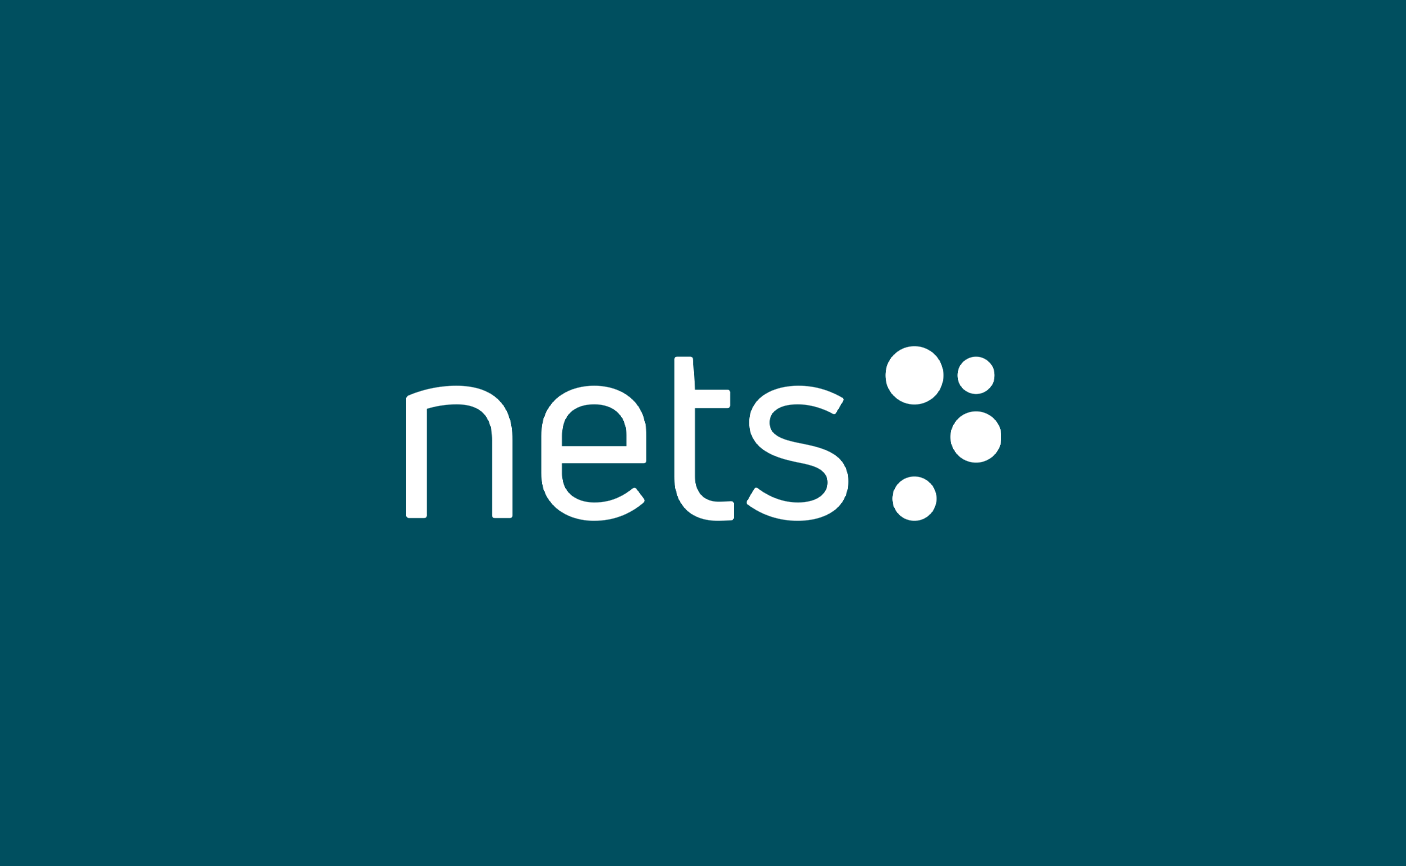 Nets - customer testimonial and customer reference